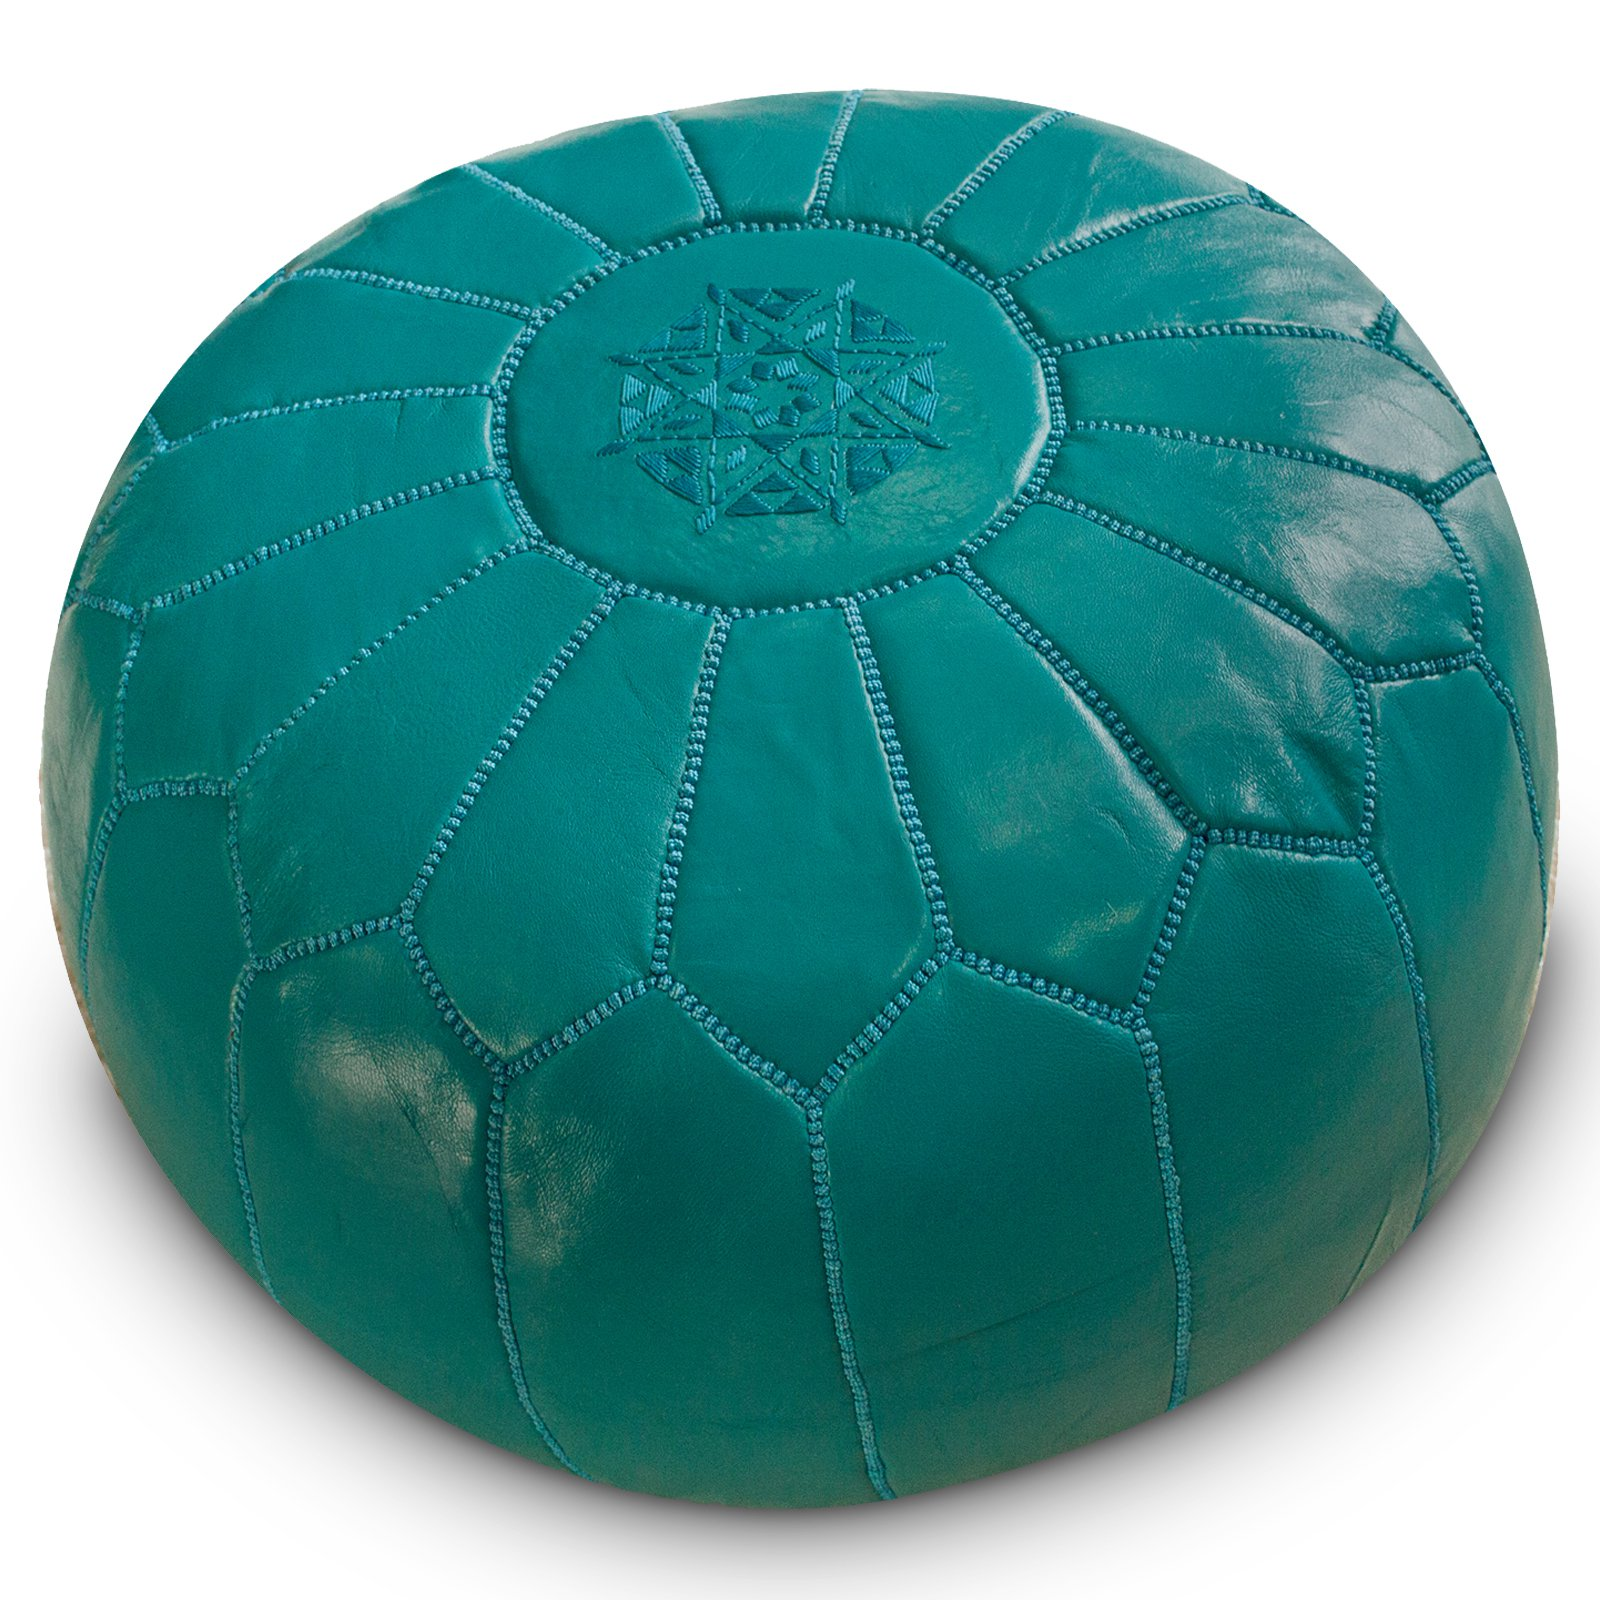 Cot In A Box Morocco Turquoise: Turquoise Moroccan Ottoman